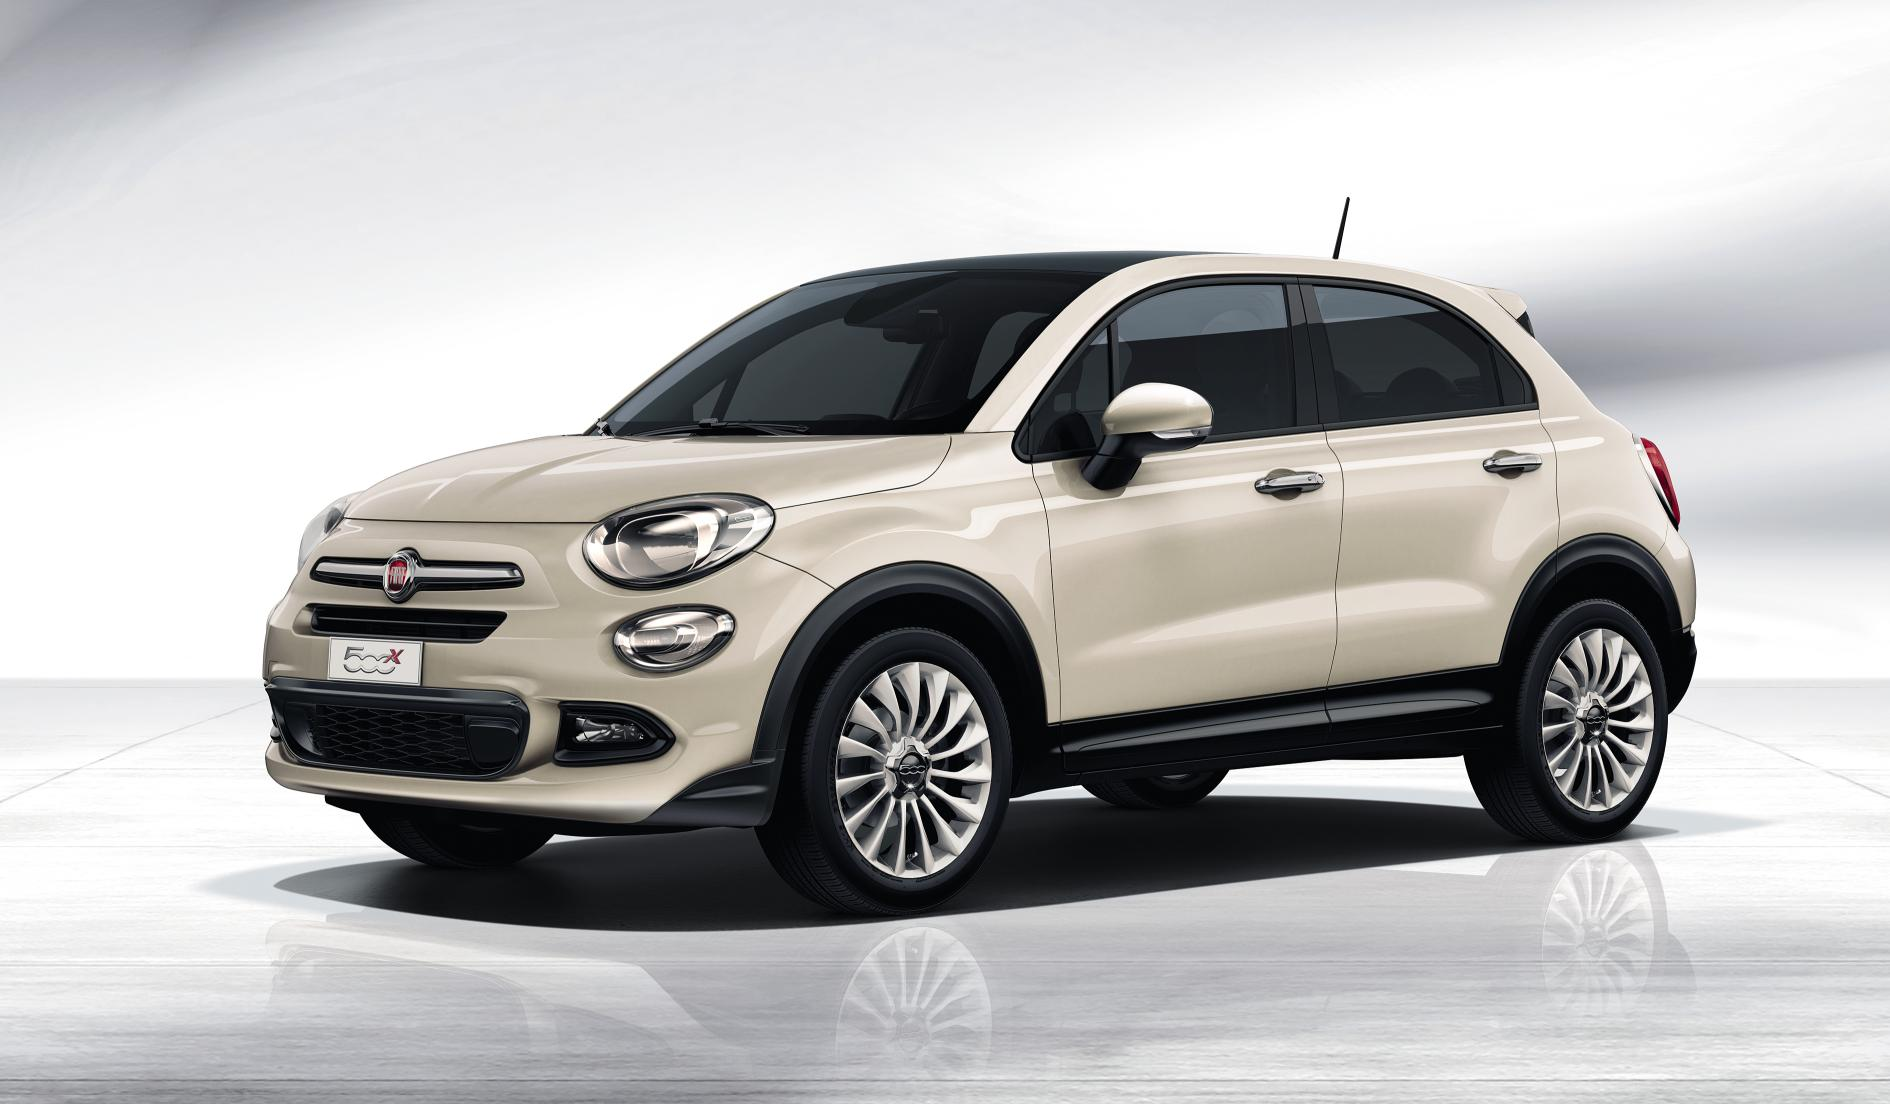 fiat 500x photo gallery car gallery suv crossovers. Black Bedroom Furniture Sets. Home Design Ideas